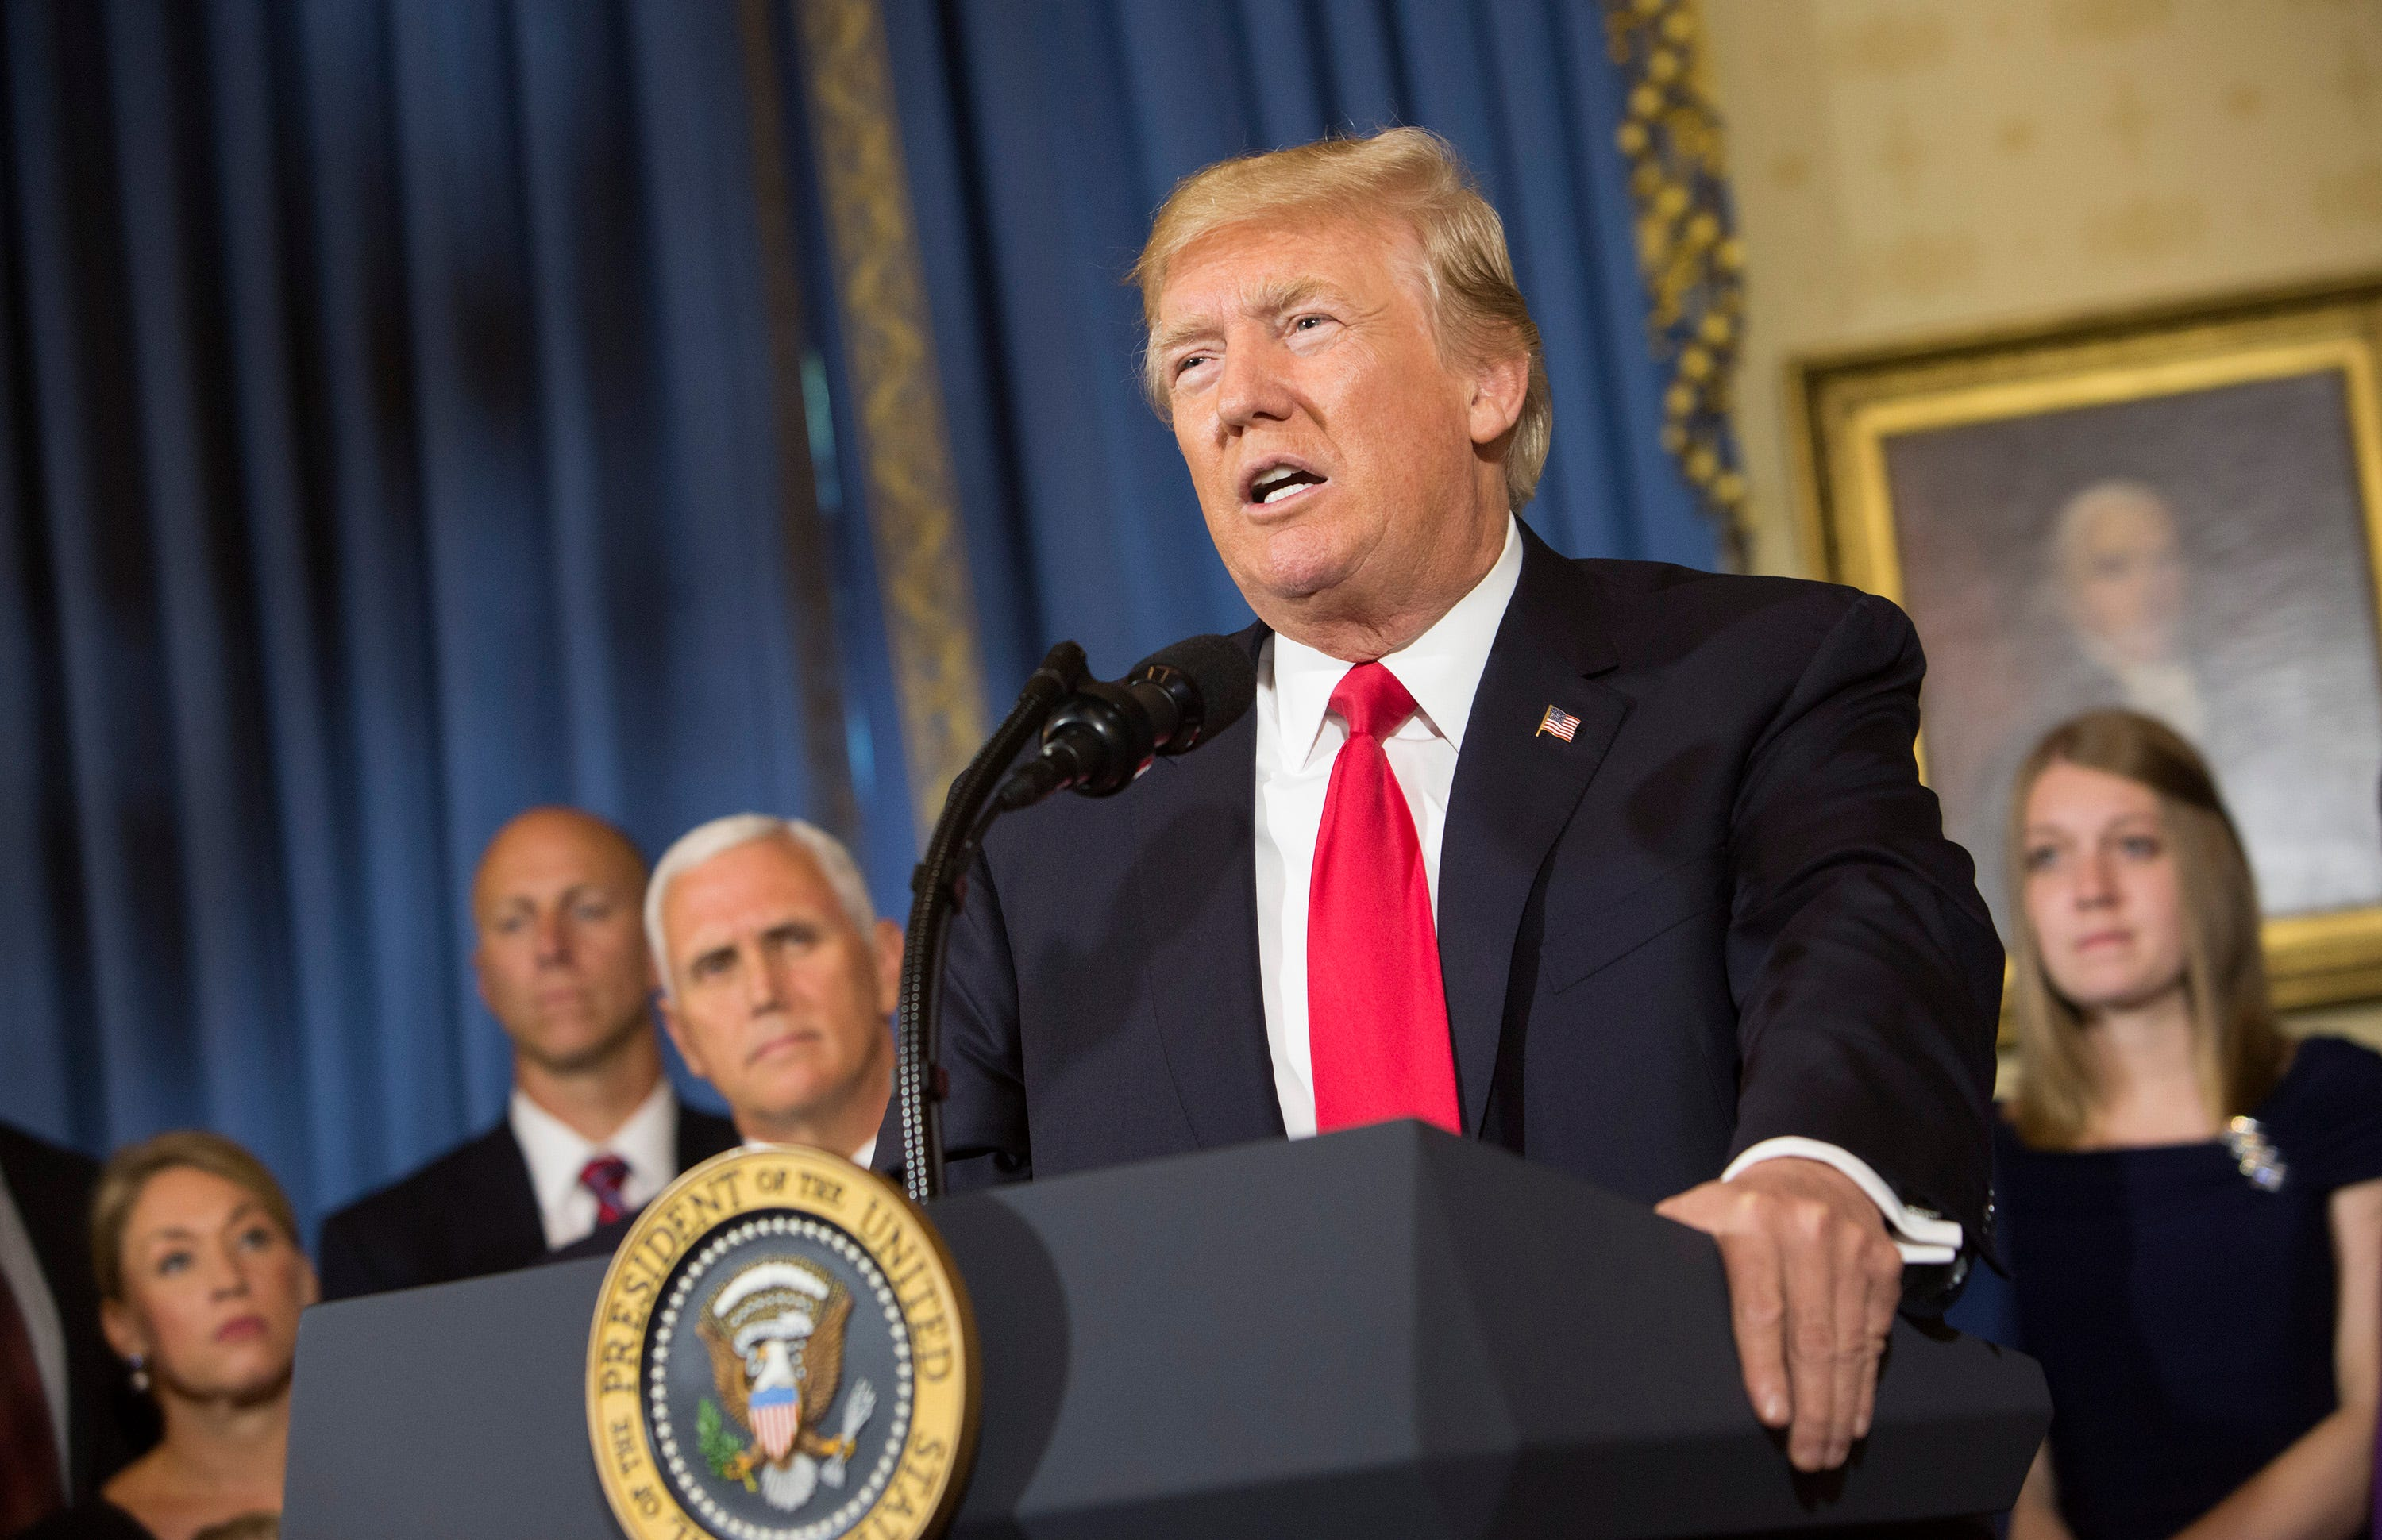 Cautioning against 'hasty' pullout from Afghanistan, Trump clears path for more U.S. troops